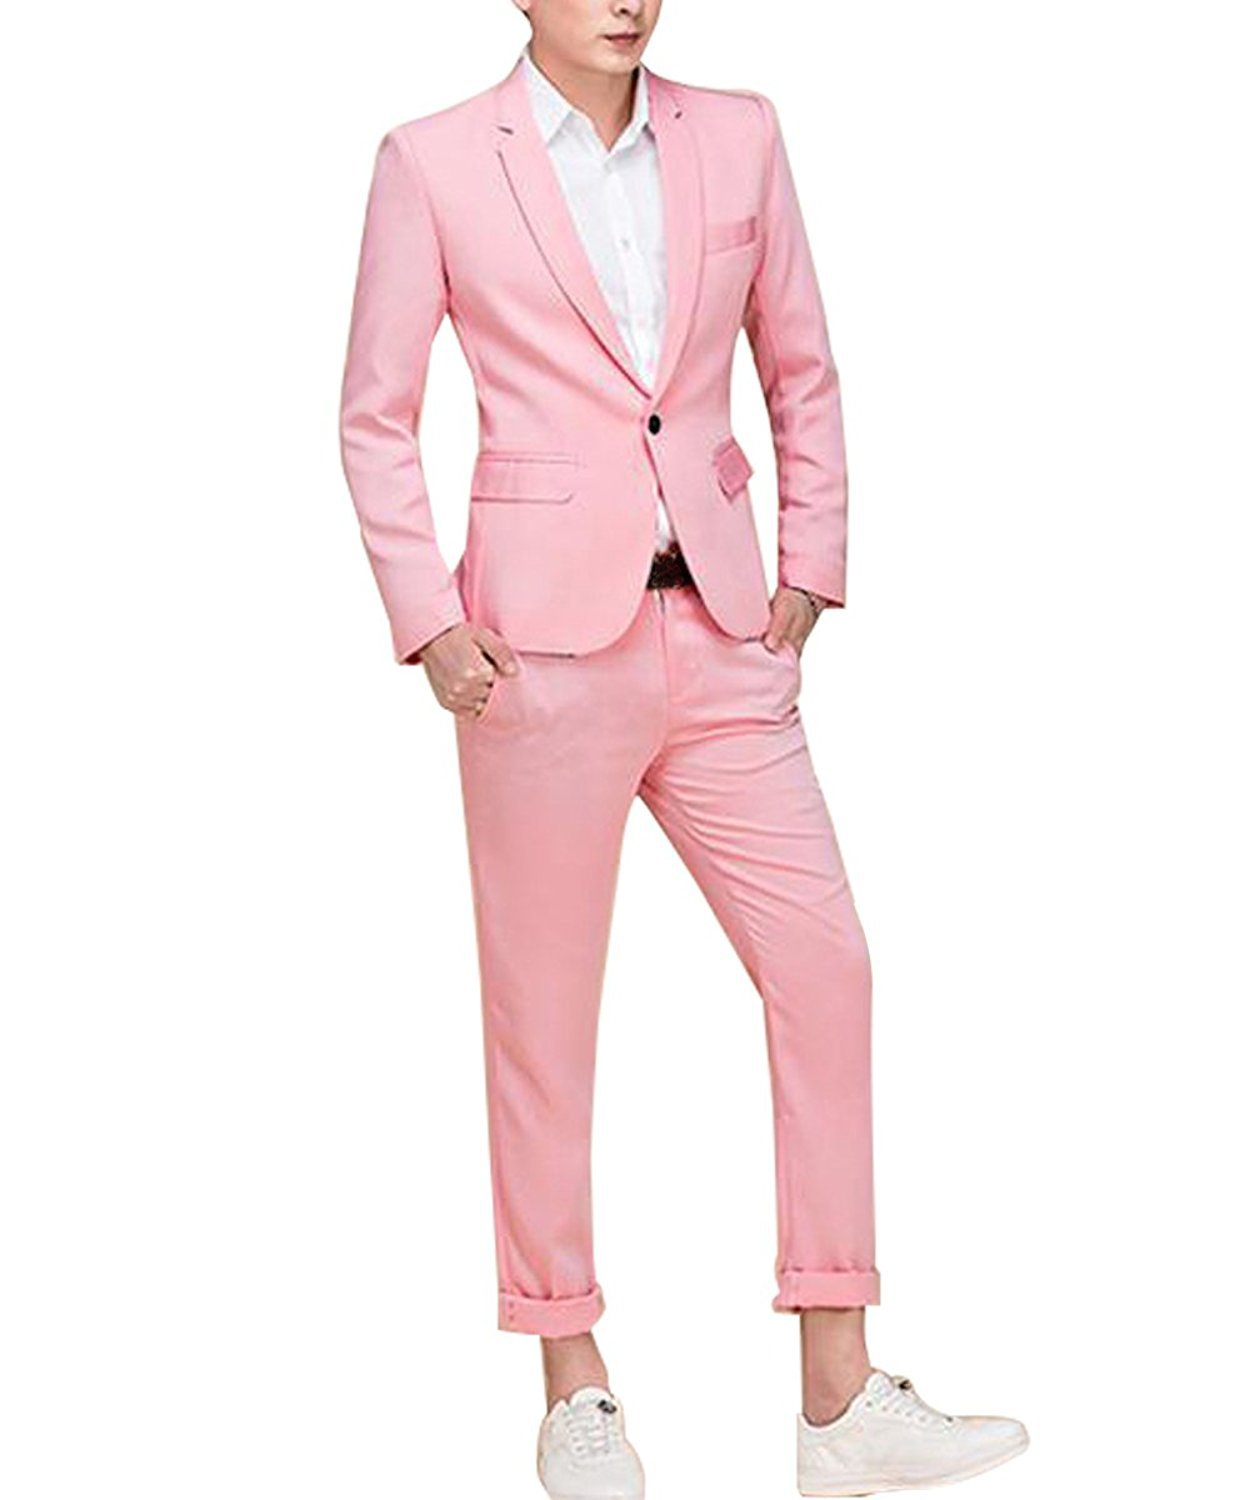 Men's Suit Single-Breasted One Button Center Vent 2 Pieces Slim Fit Formal Suits,Pink,X-Large by Cloudstyle